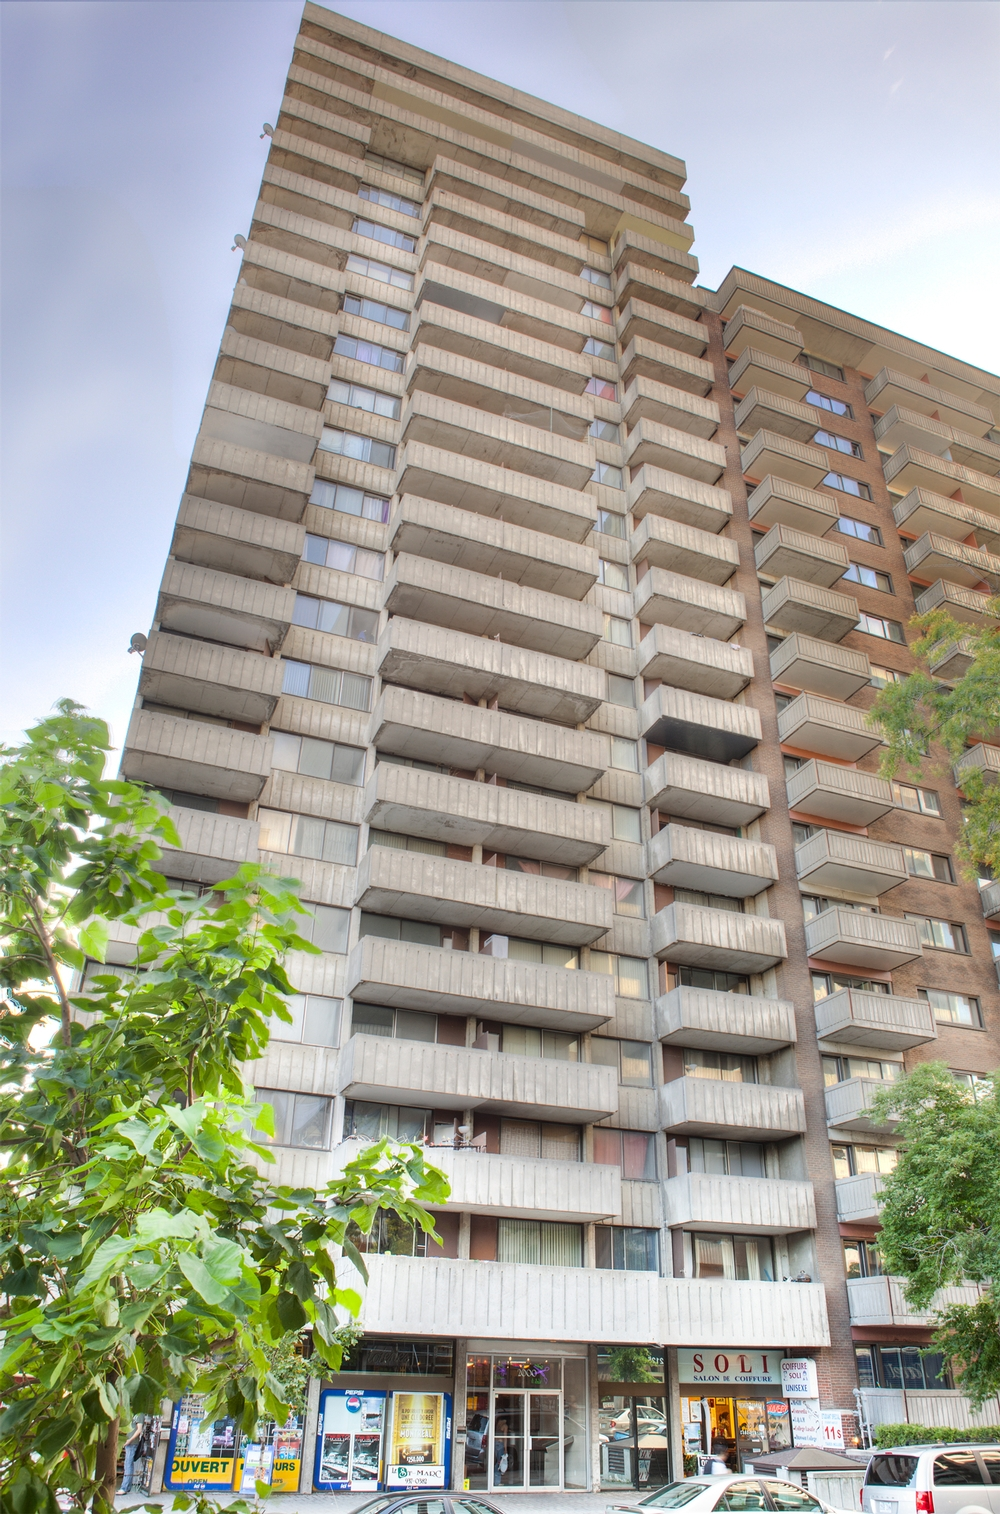 Studio / Bachelor Apartments for rent in Montreal (Downtown) at St Marc - Photo 01 - RentersPages – L350779